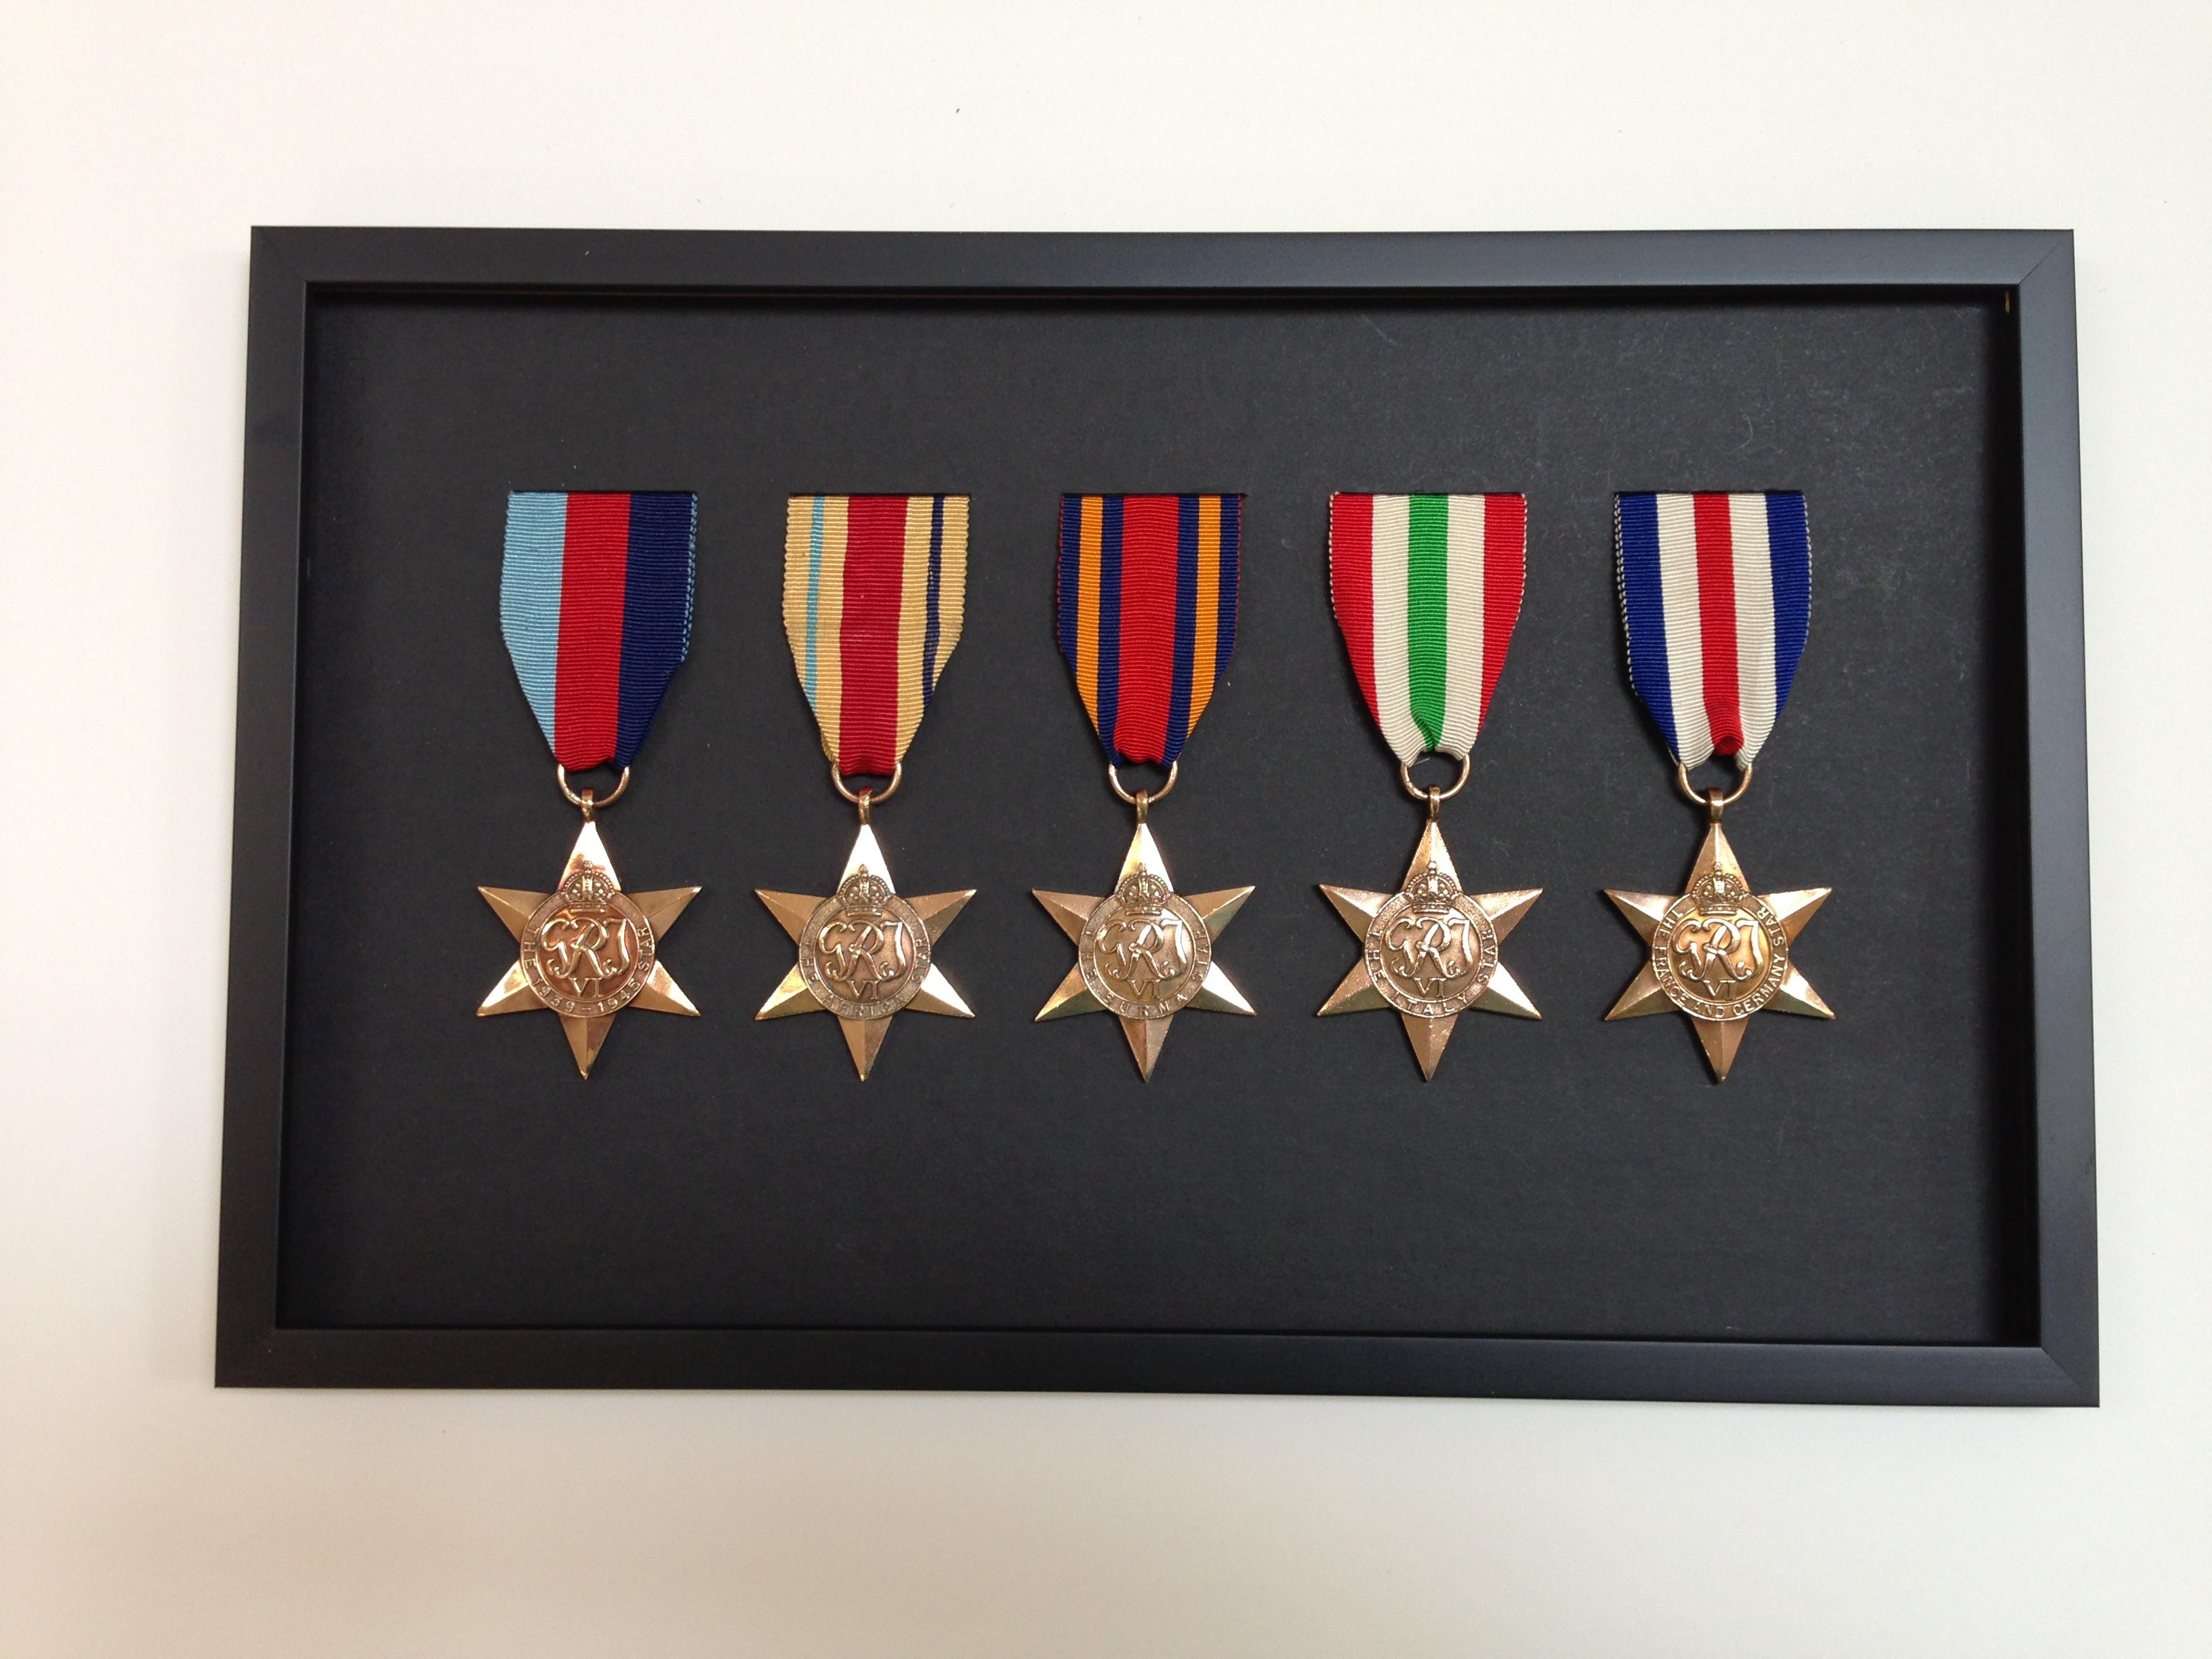 Medals row of 5 stars